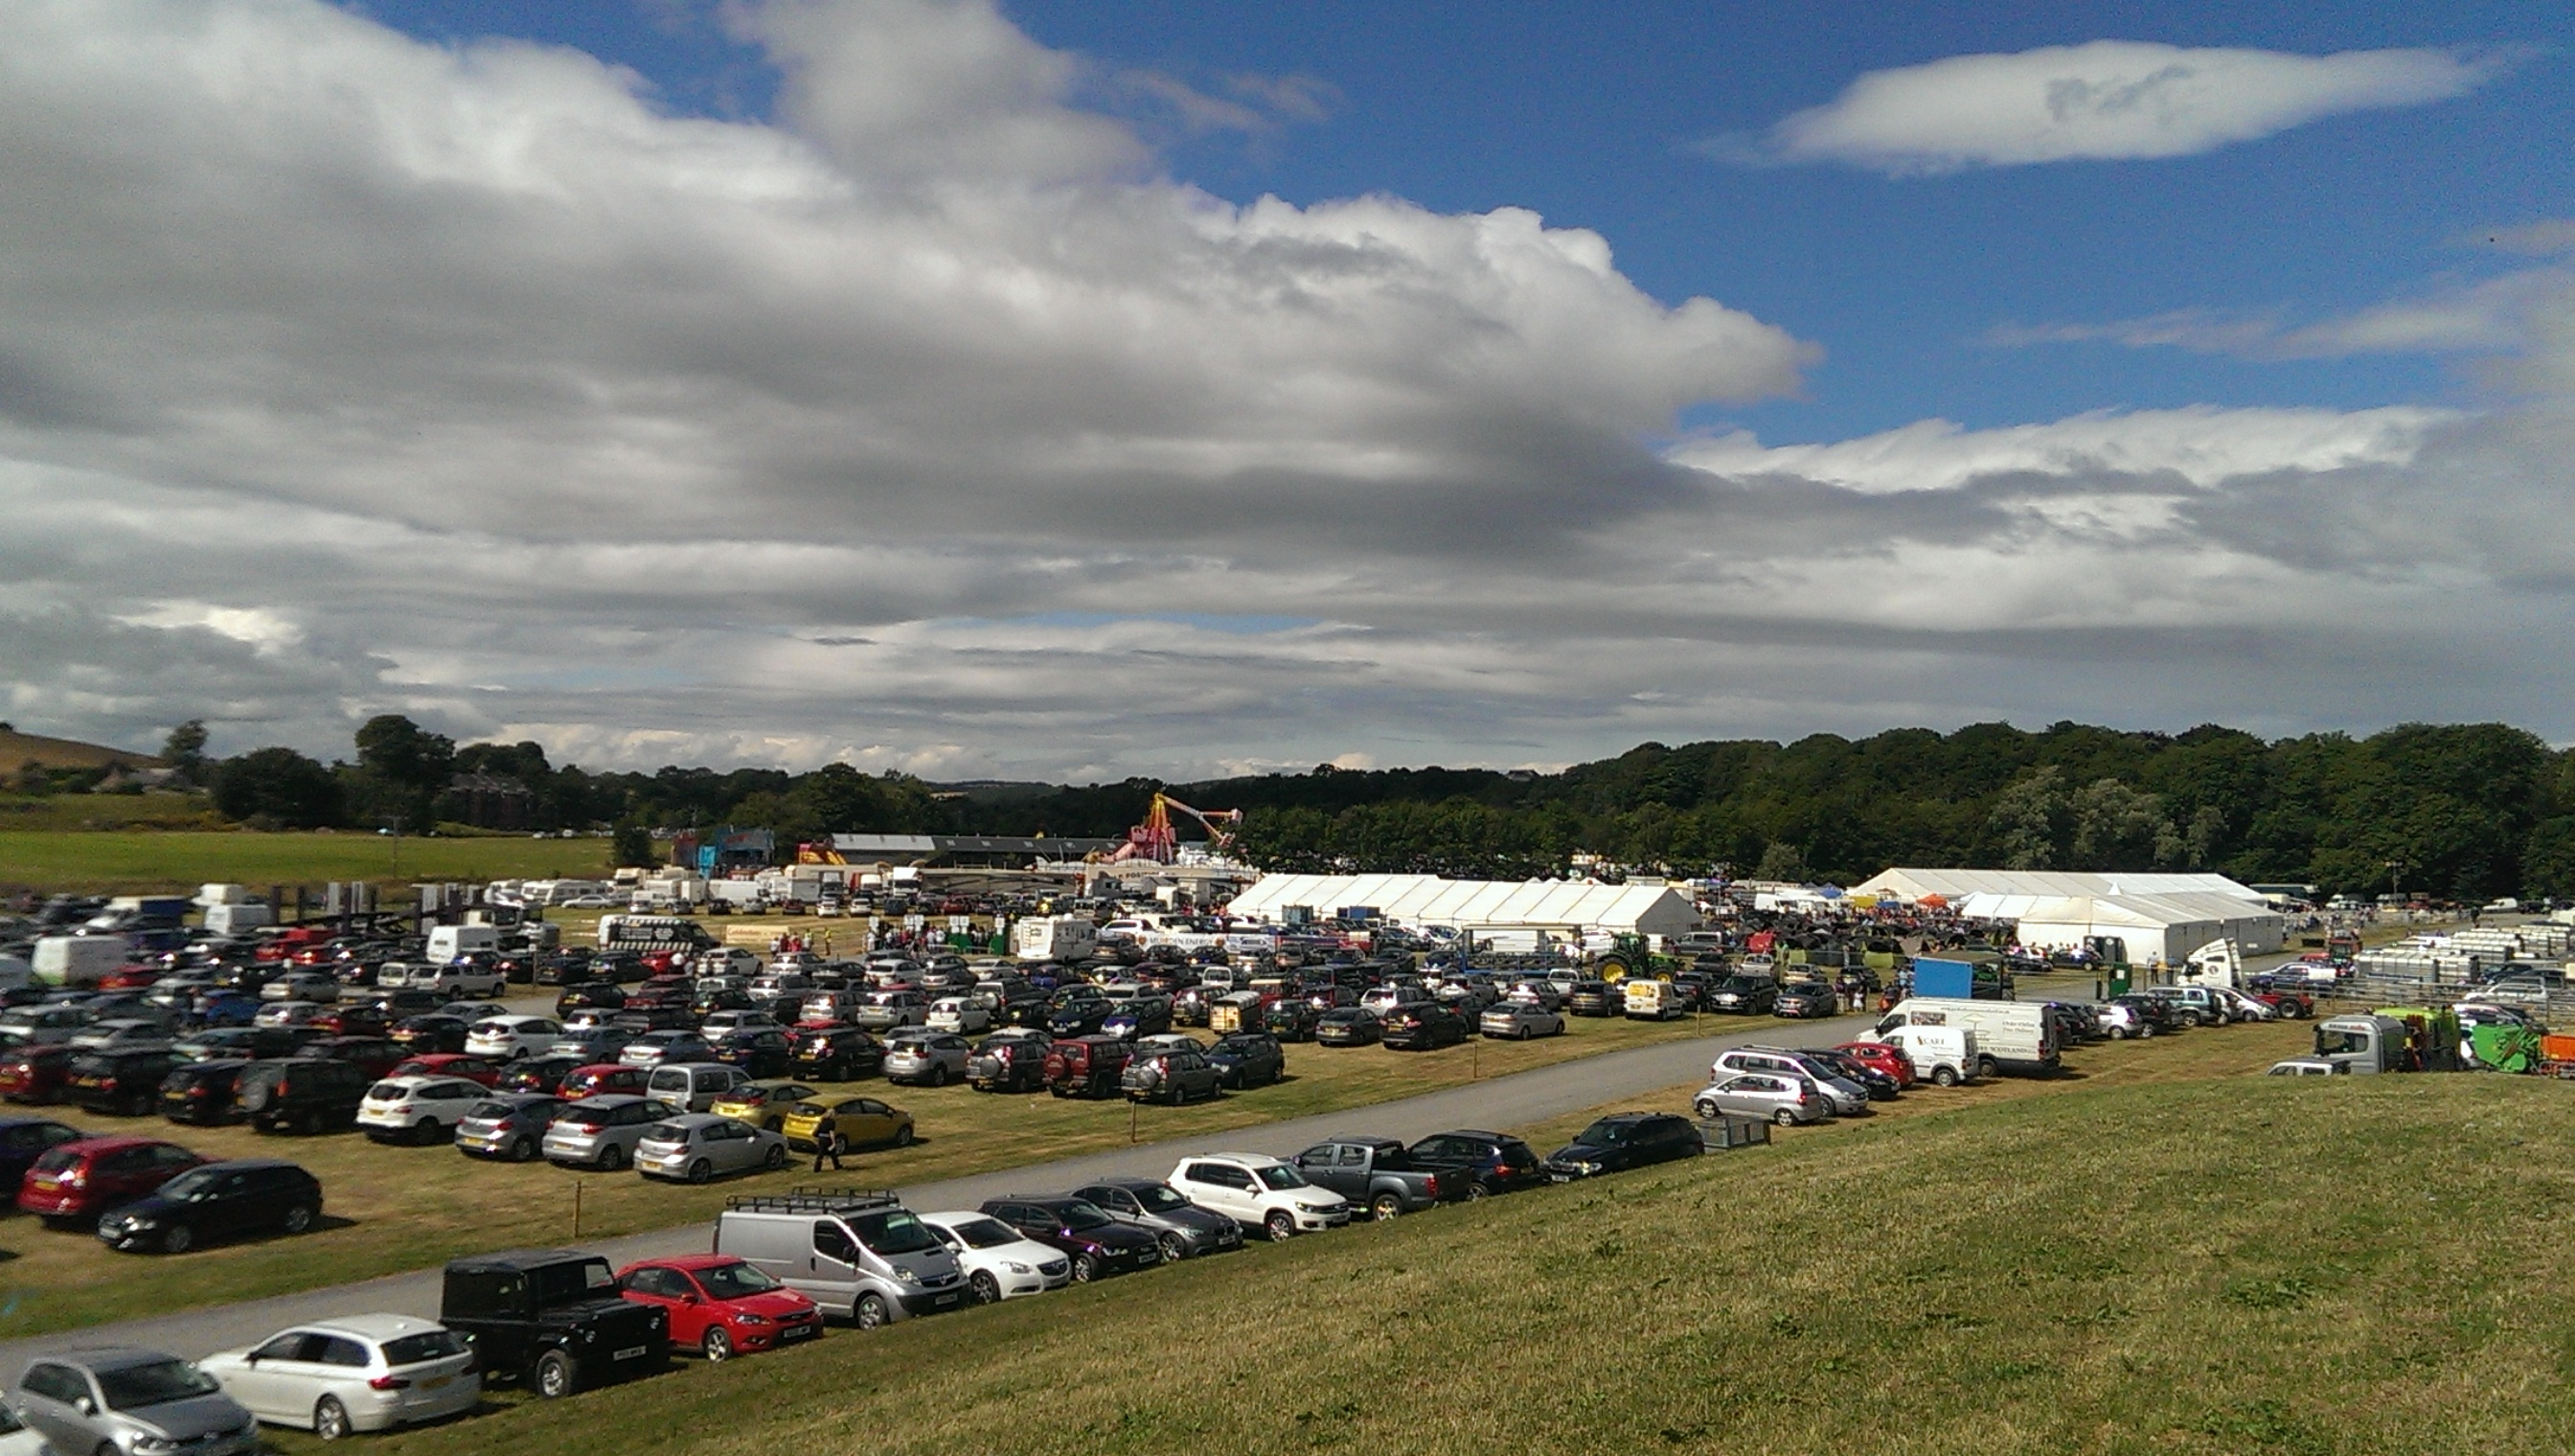 The Turriff Show